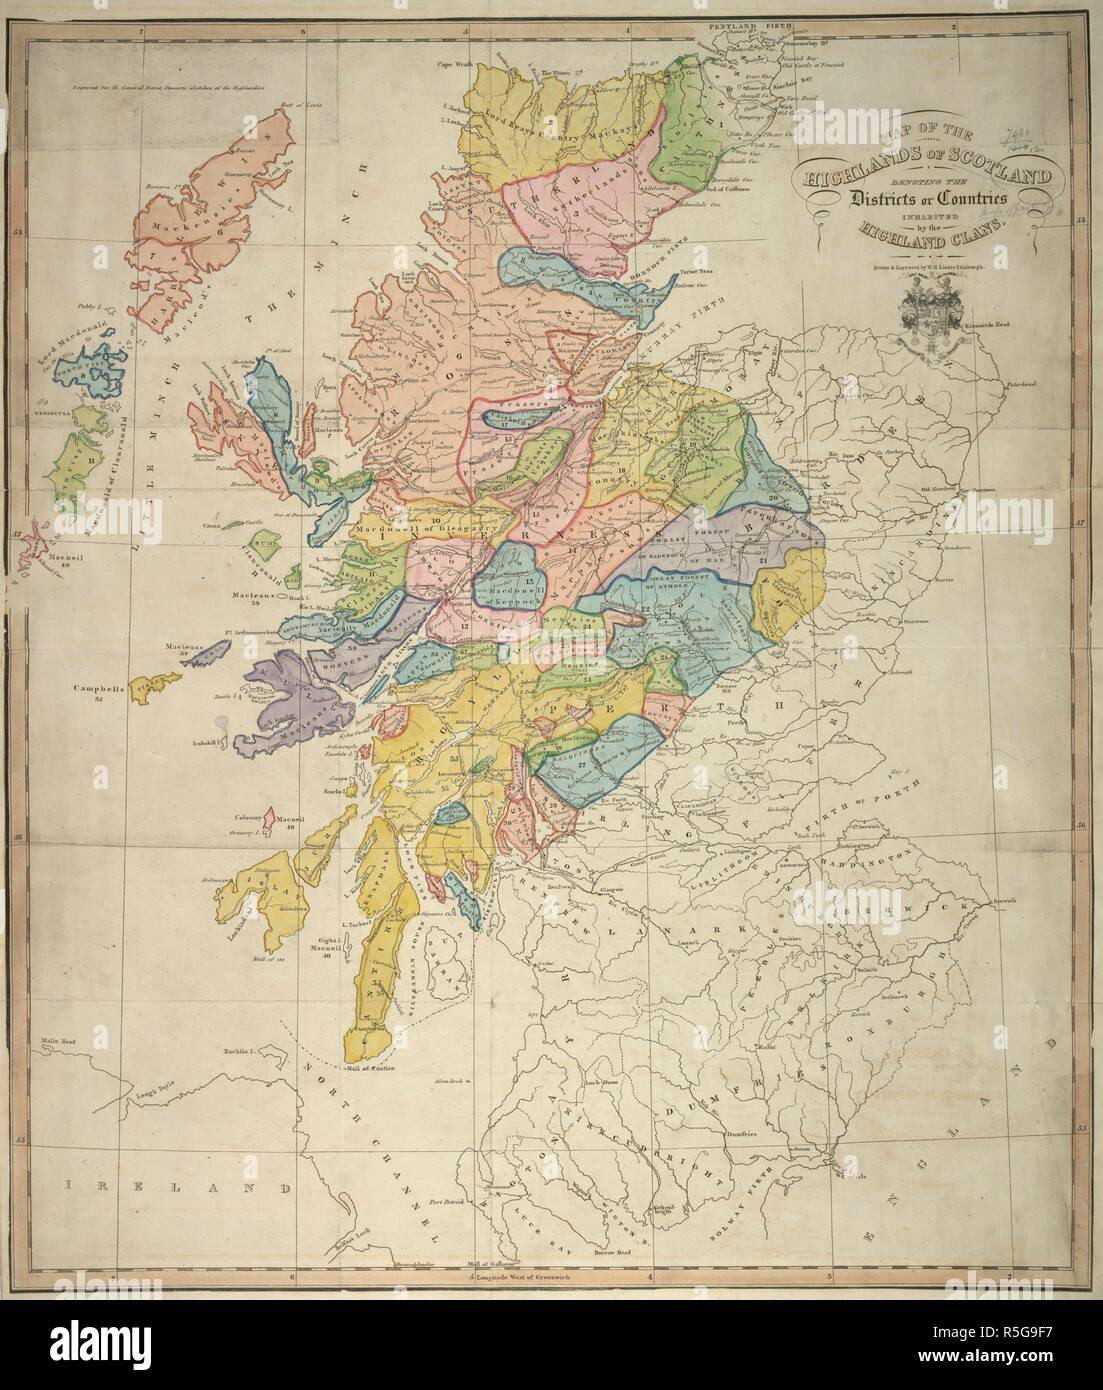 A map of the Highlands of Scotland. Map of the Highlands of Scotland,  denoting